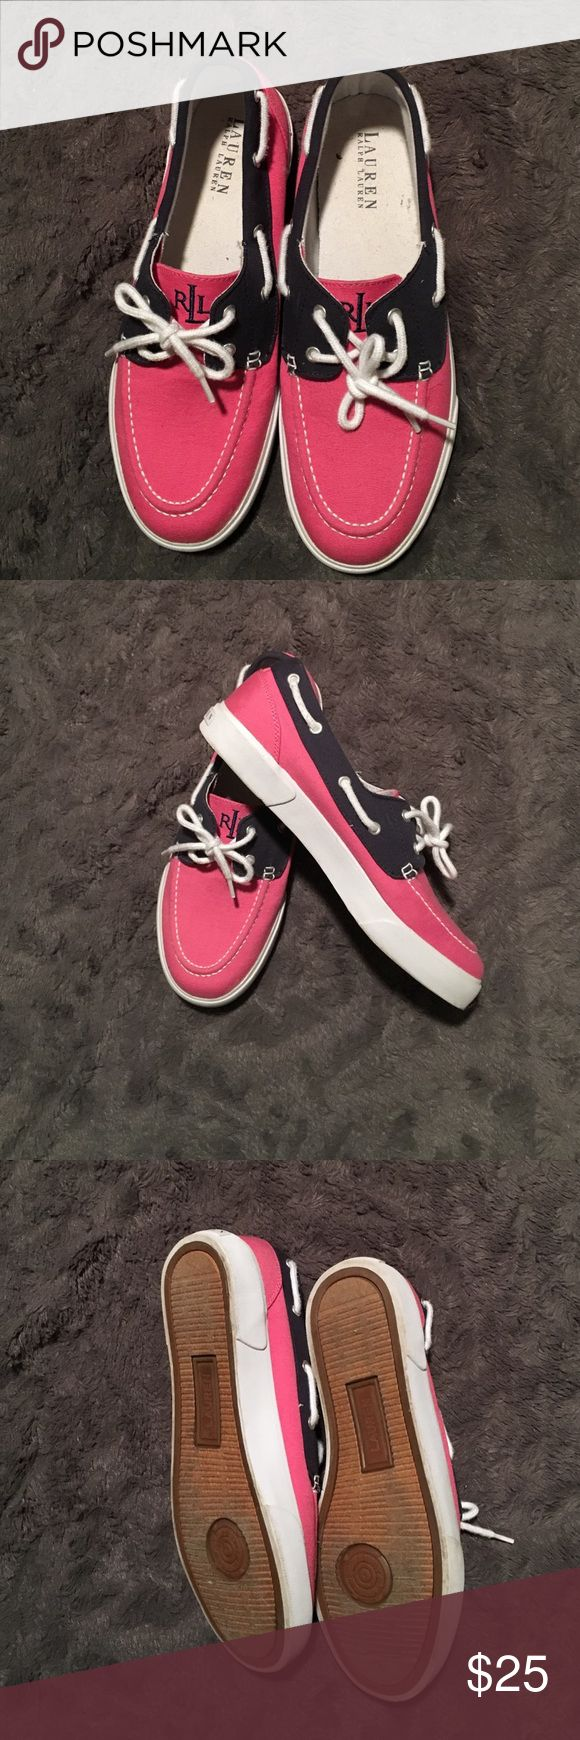 Navy, pink and white Ralph Lauren boat shoes. Navy, pink and white Ralph Lauren boat shoes! Worn once or twice. So cute for the spring! Lauren Ralph Lauren Shoes Flats & Loafers